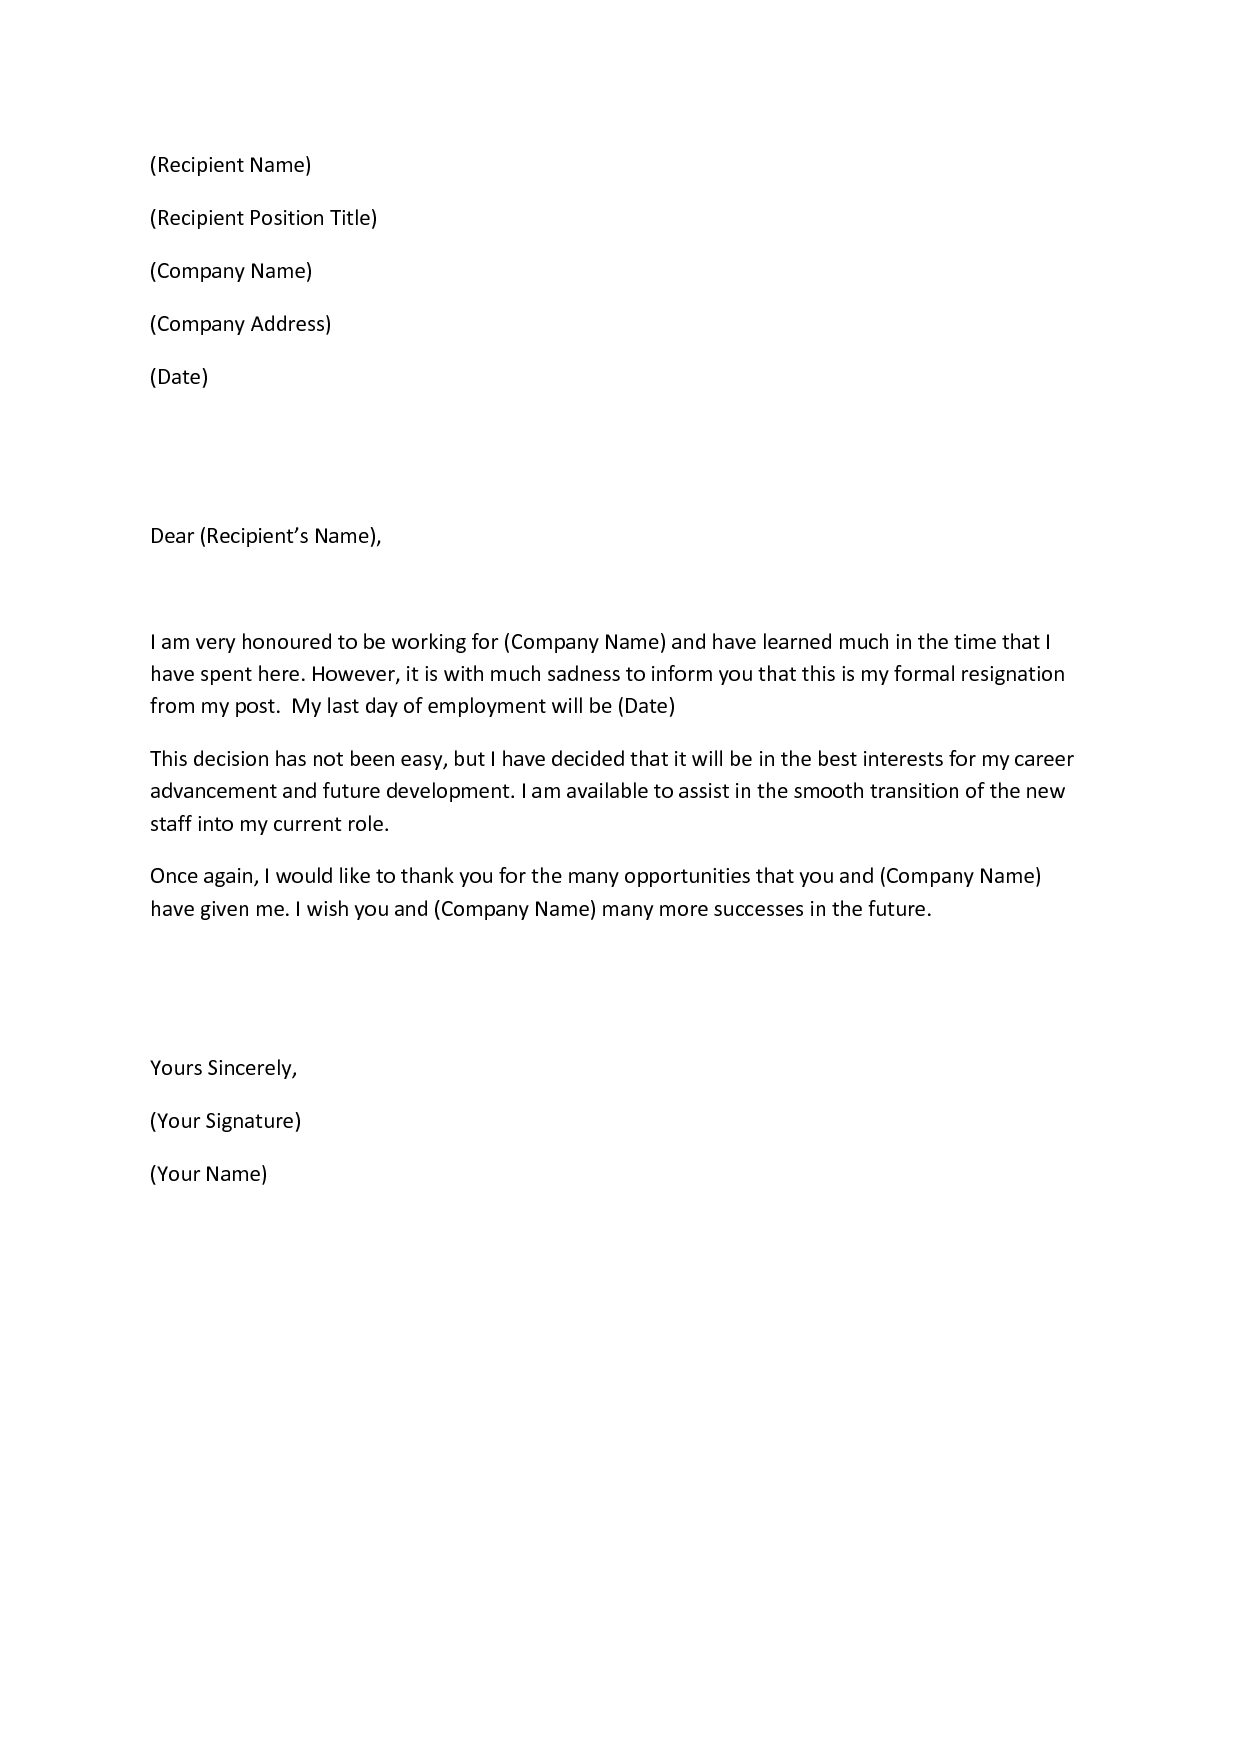 Resignation Format This Article Will Include Multiple Sample Letters For Quitting A